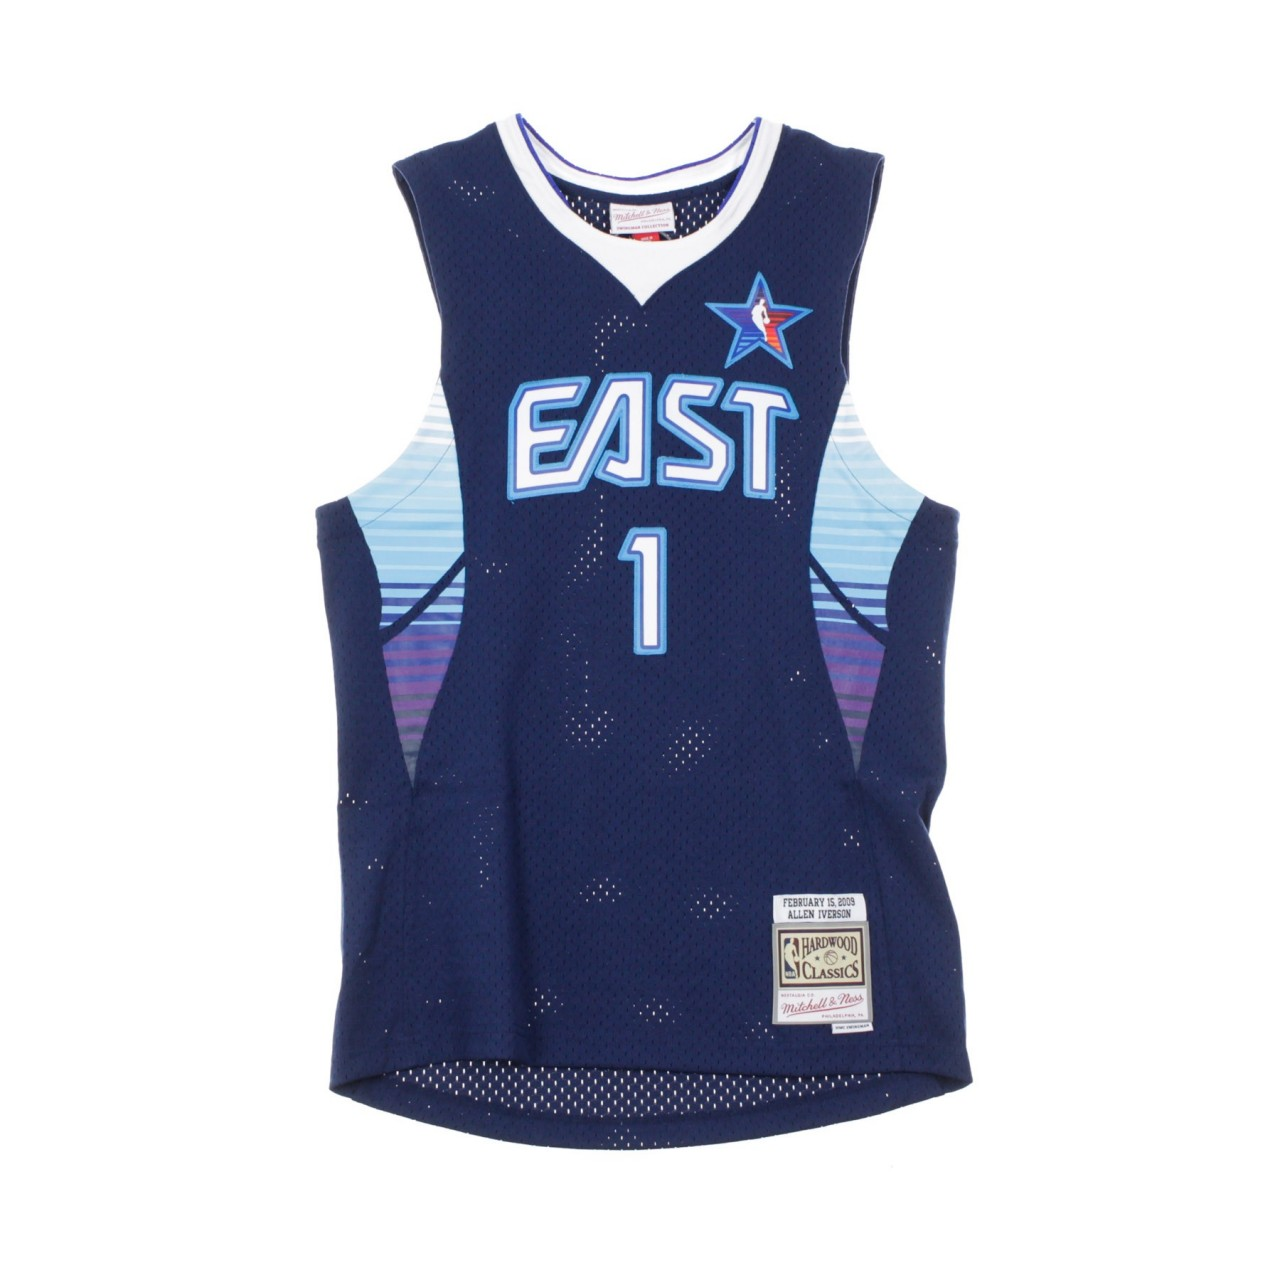 MITCHELL & NESS NBA SWINGMAN JERSEY ALLEN IVERSON NO.1 ALL STAR GAME EAST 2009 SMJYEL18014-ASENAVY09AIV